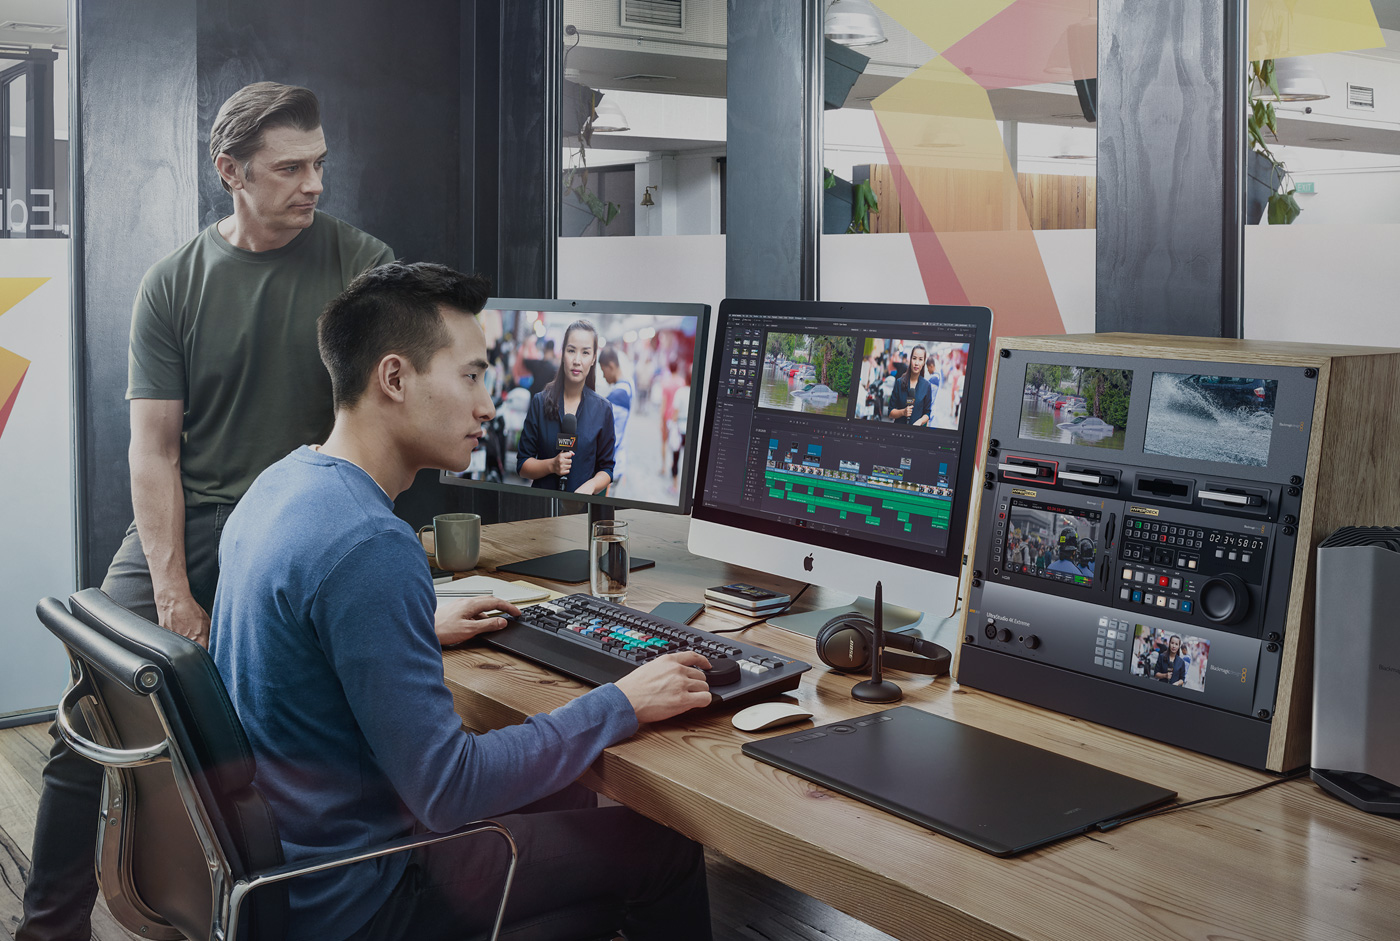 DaVinci Resolve 16 | Blackmagic Design